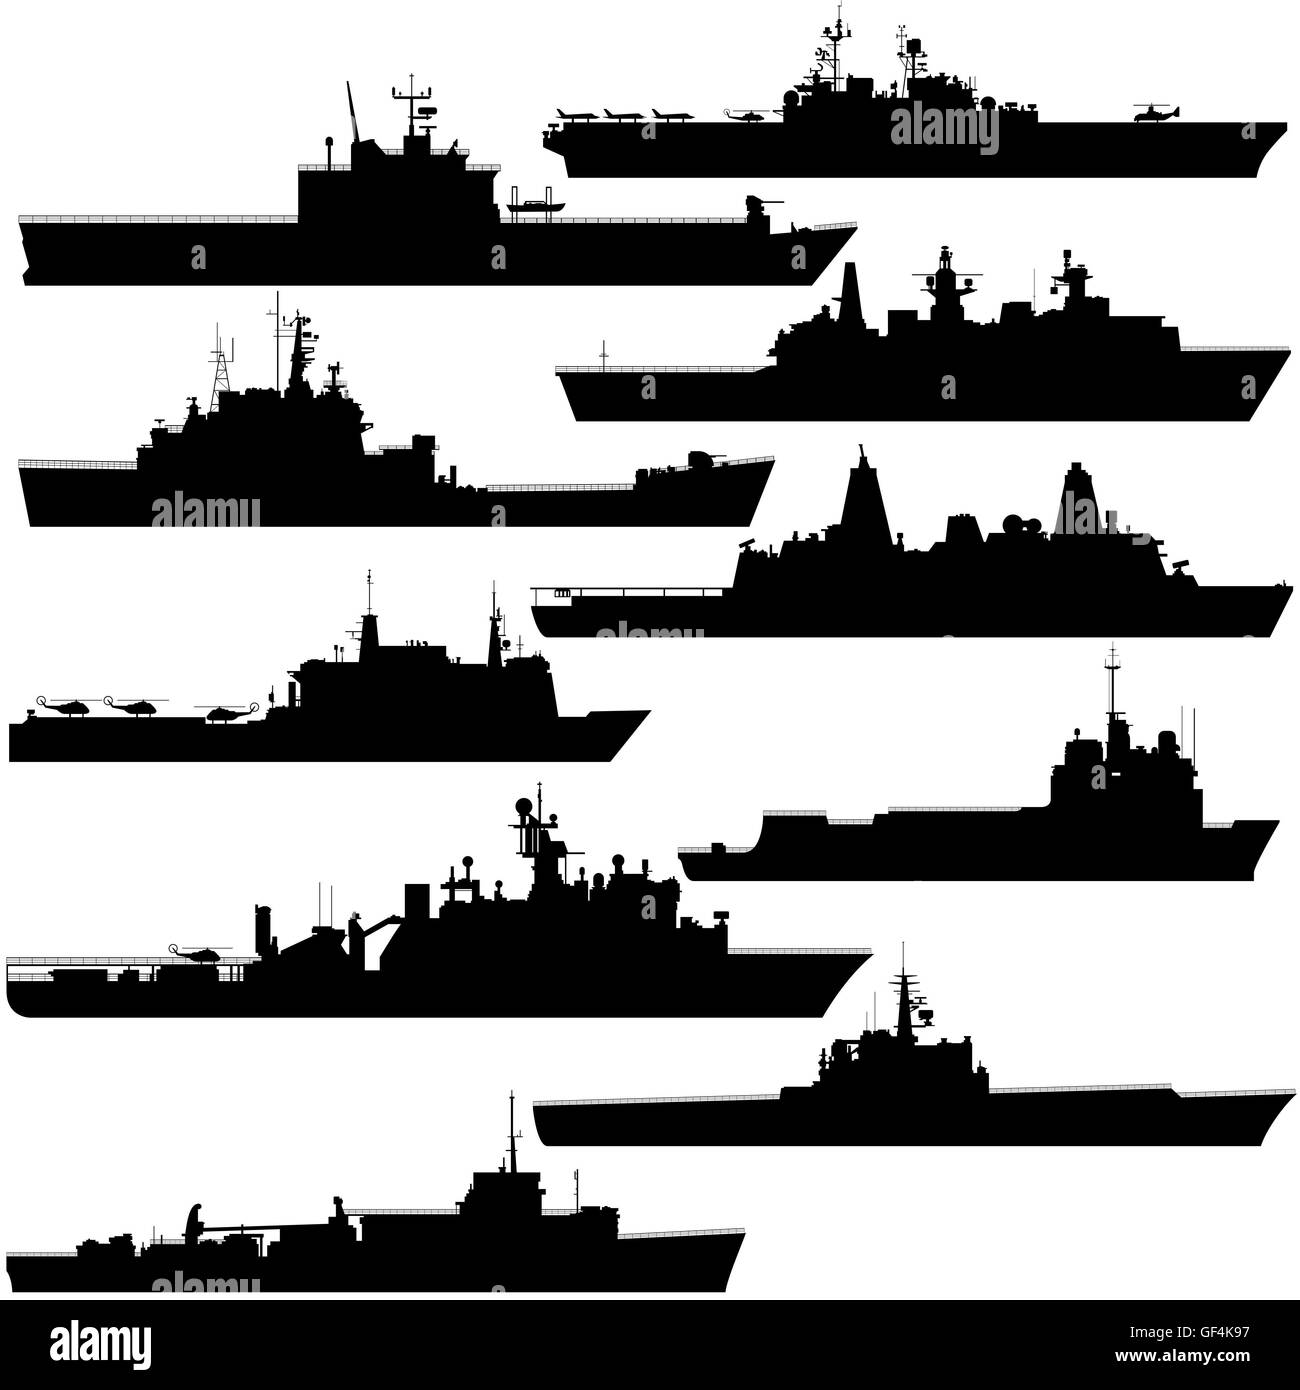 Contour image of amphibious ships. Illustration on white background. Stock Photo